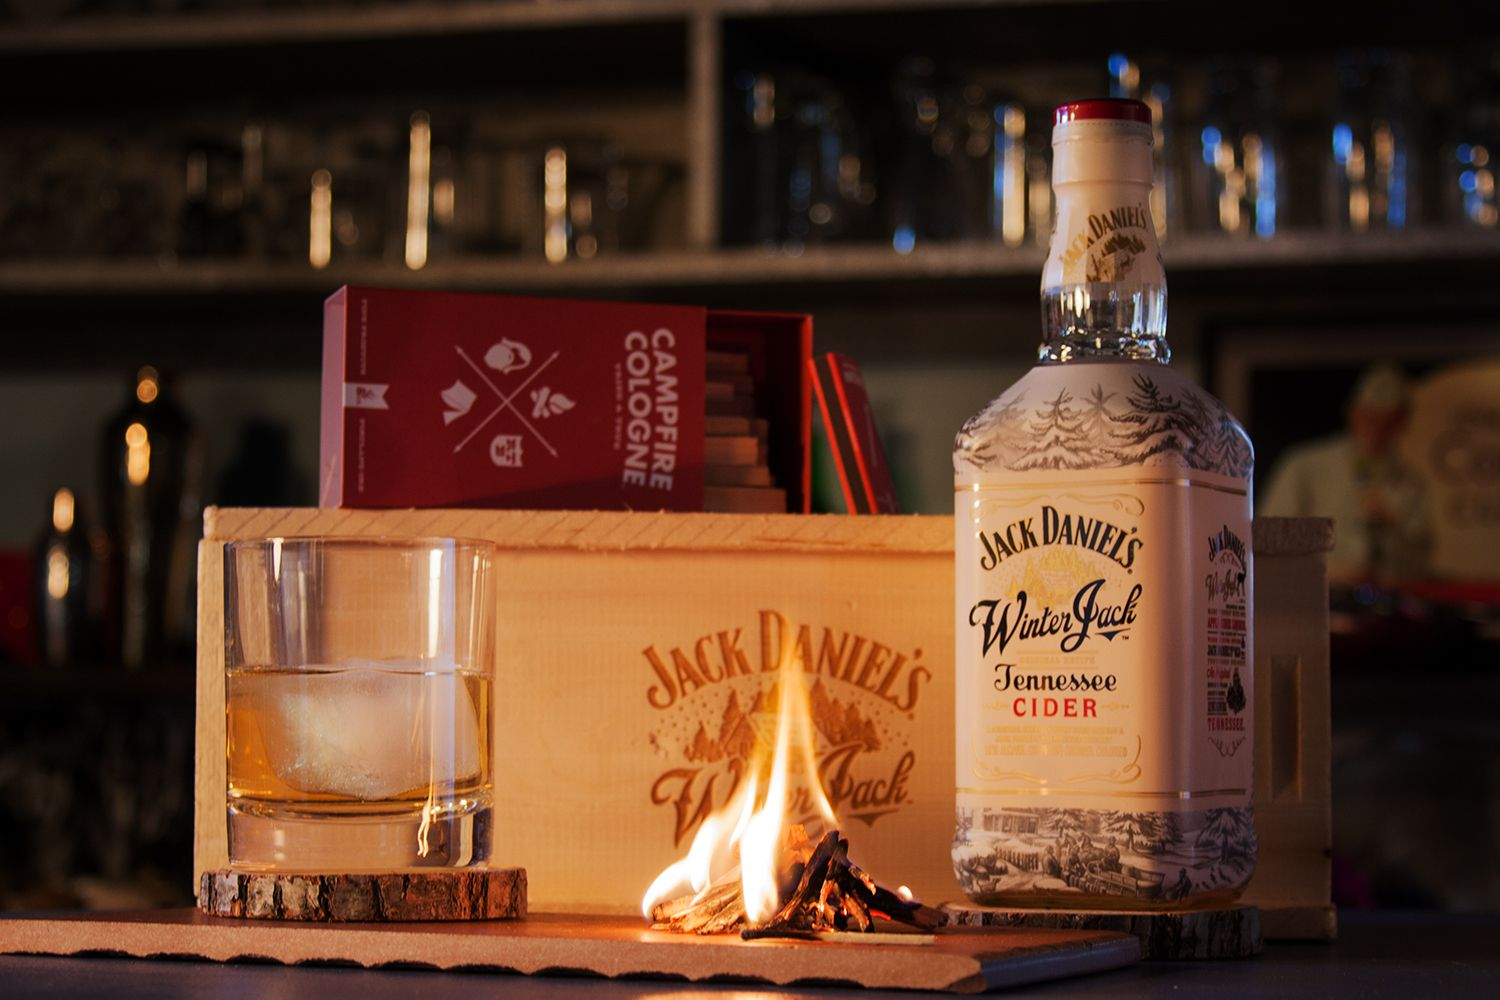 Top Jack Daniel's Old No. 7 Tennessee Whiskey Review UY33